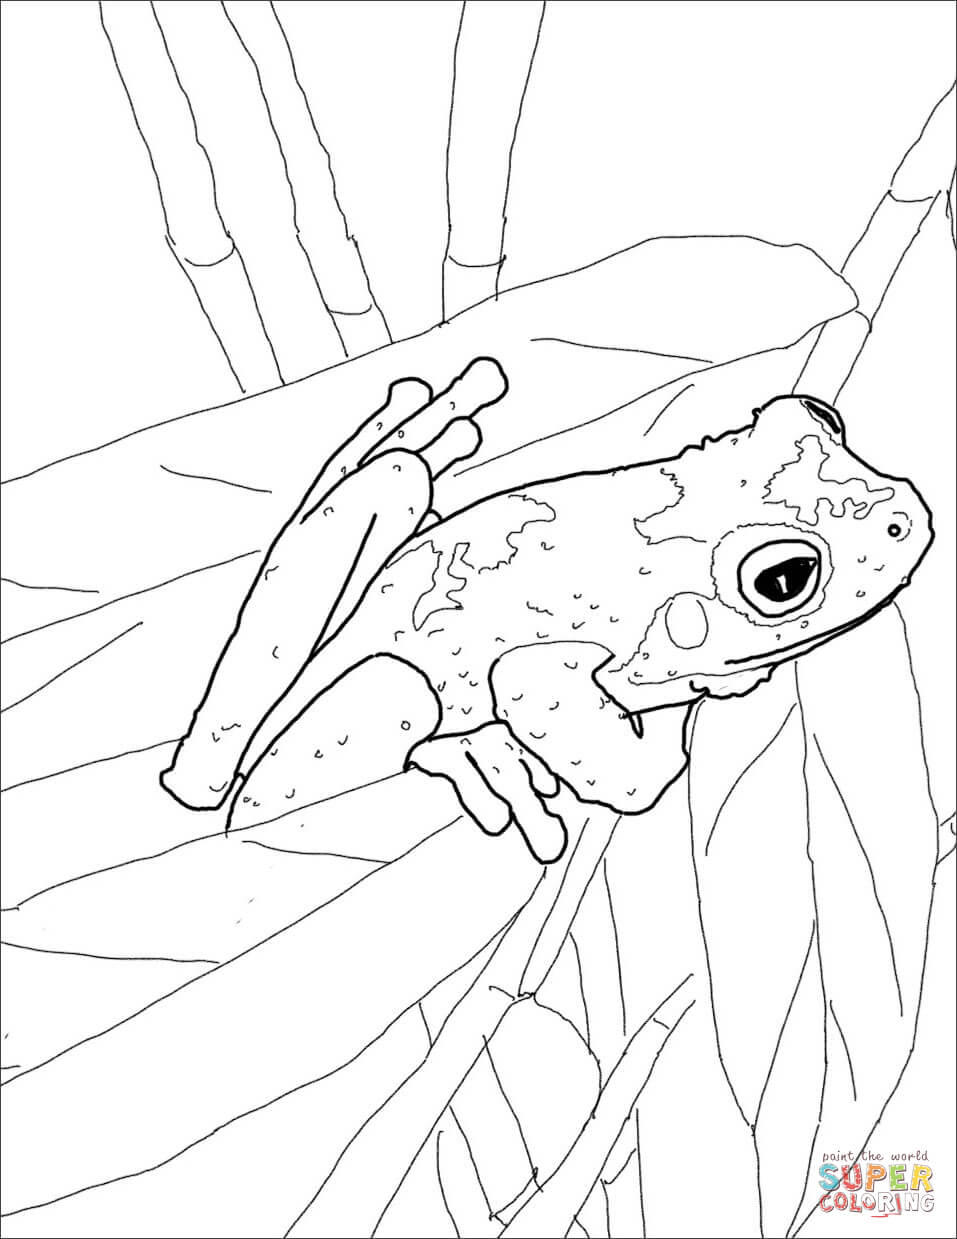 green tree frog coloring page tree frog coloring page free printable coloring pages coloring frog tree page green